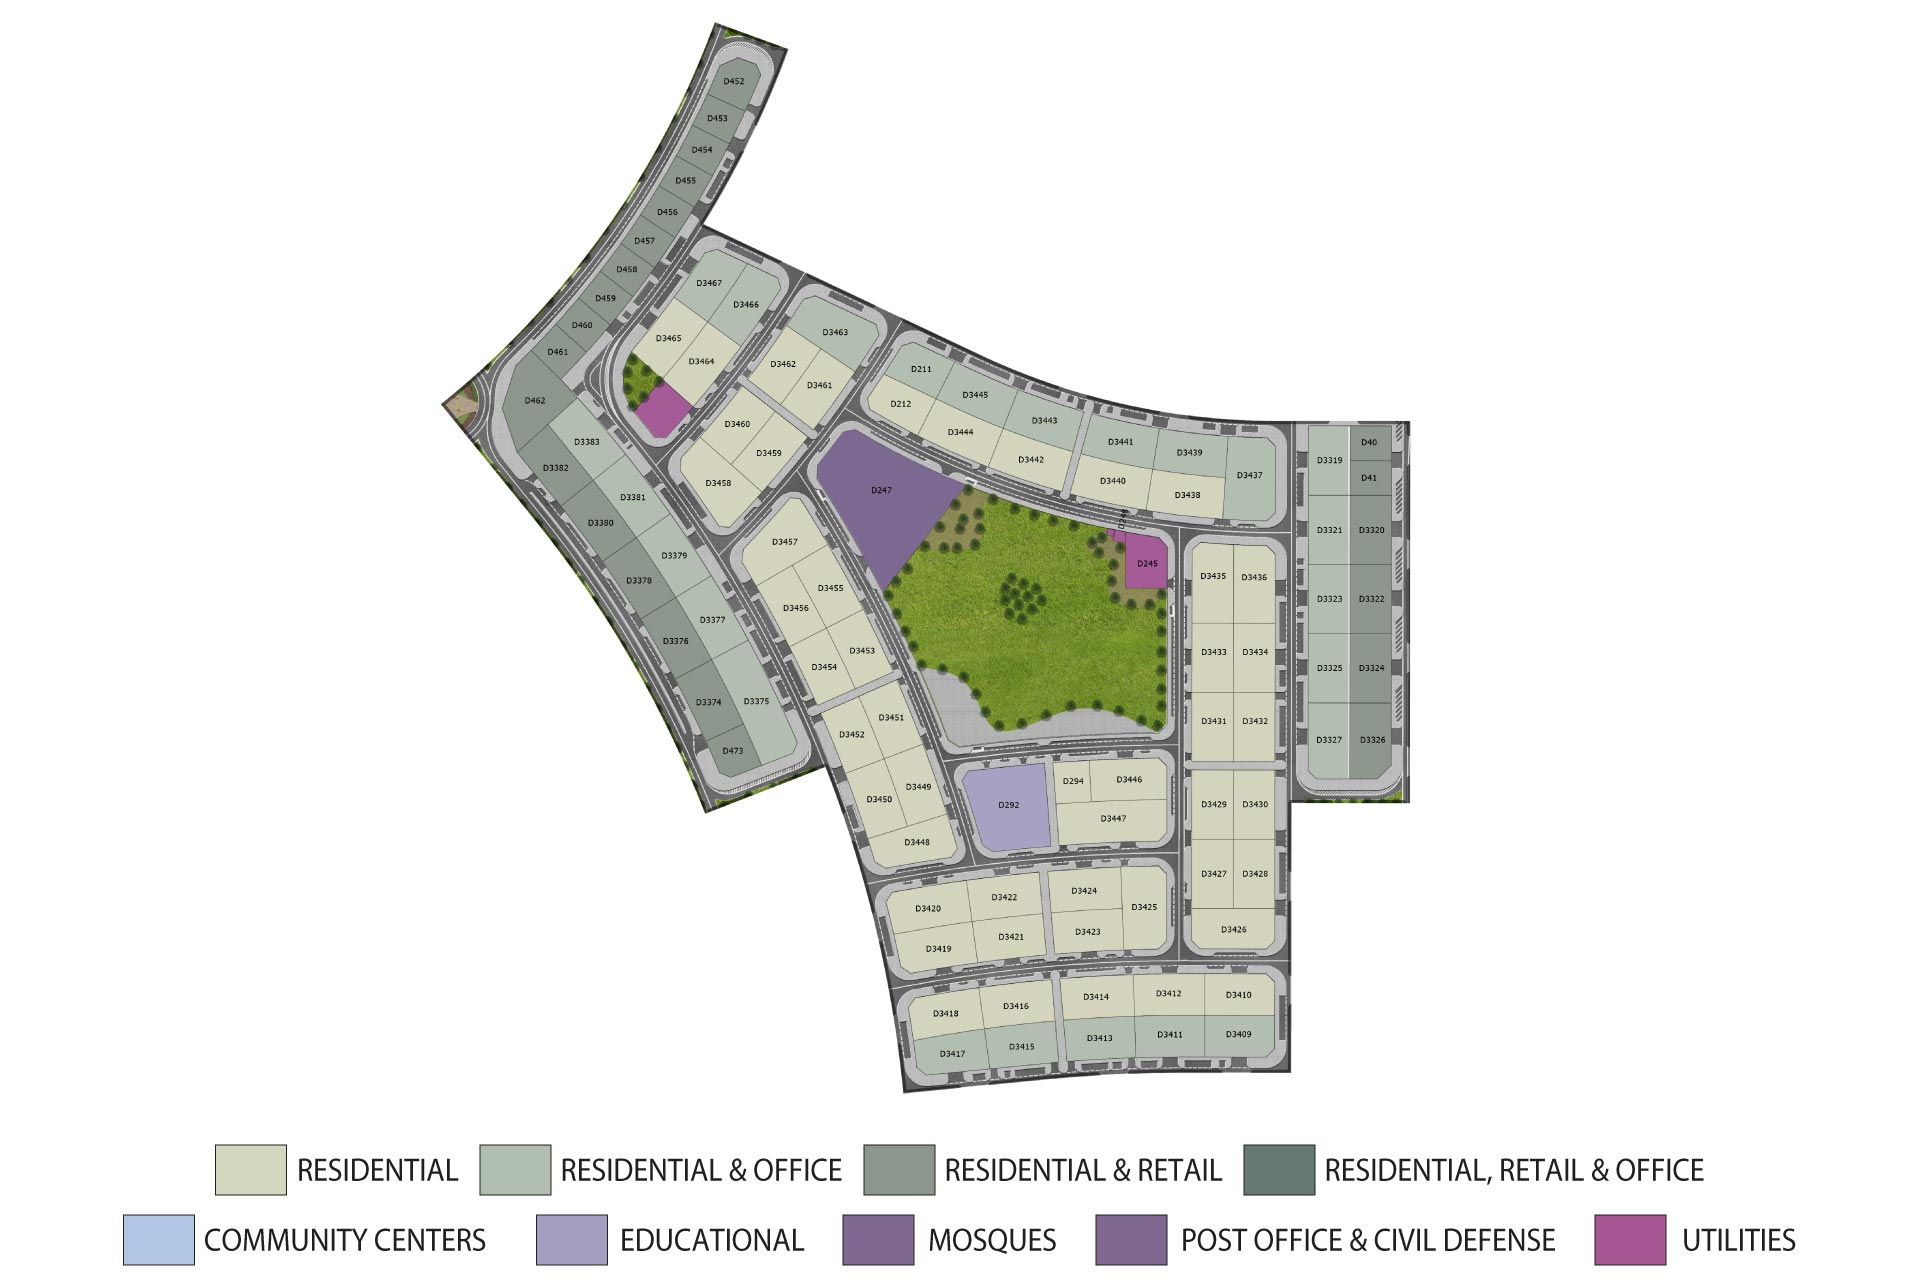 land for sale in uae